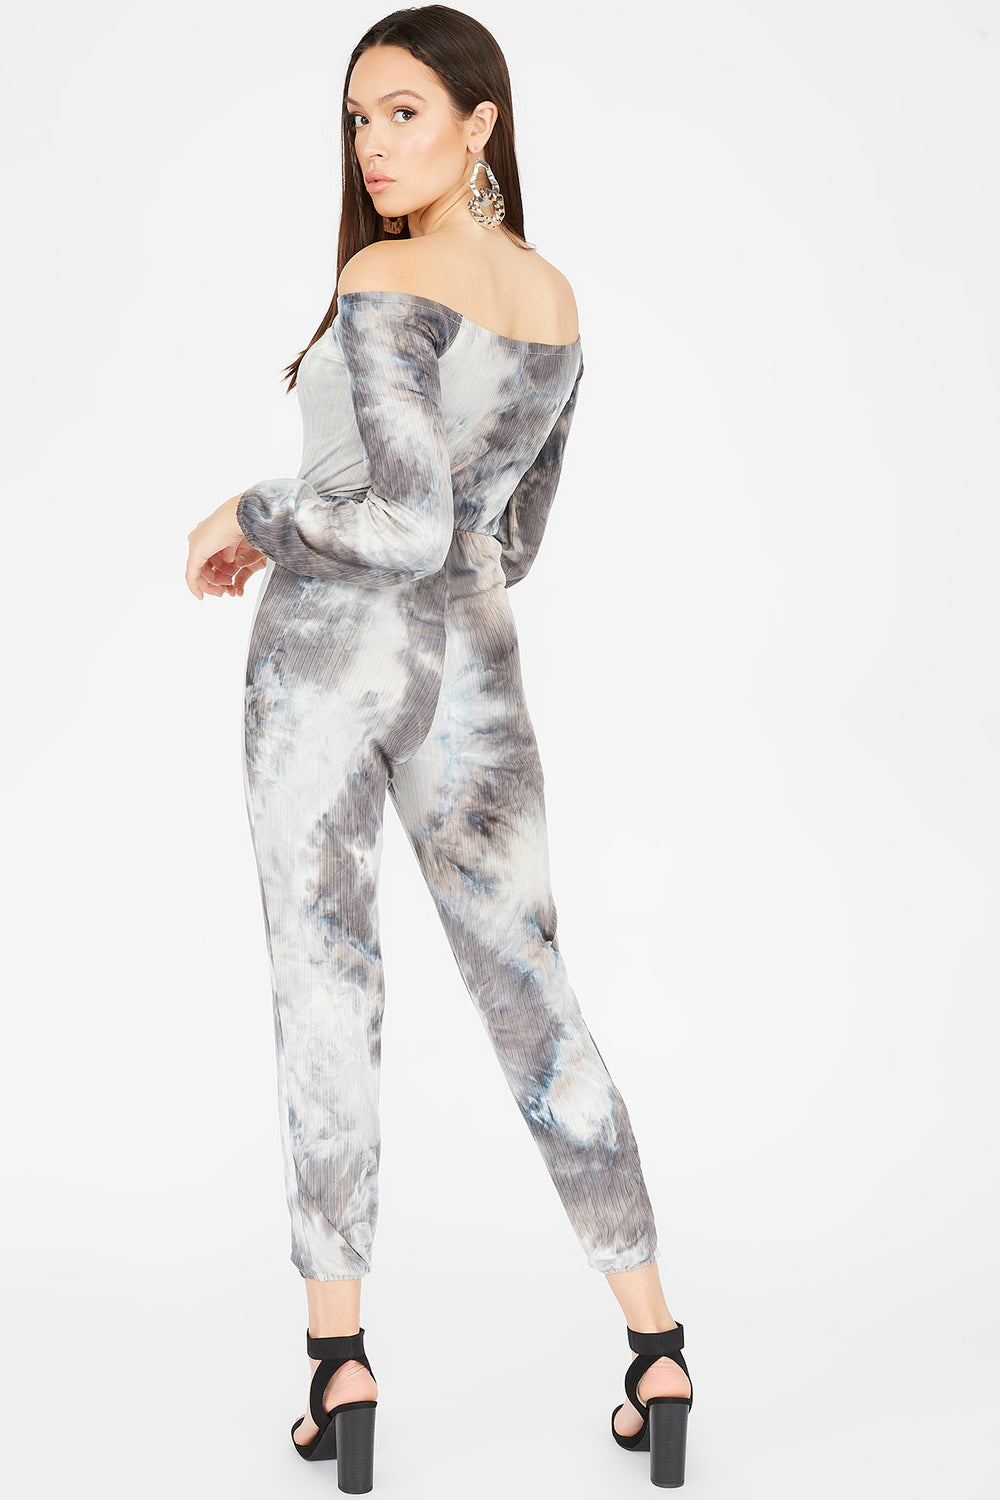 Ribbed Grey Tie Dye Off The Shoulder Self-Tie Jogger Jumpsuit Charcoal